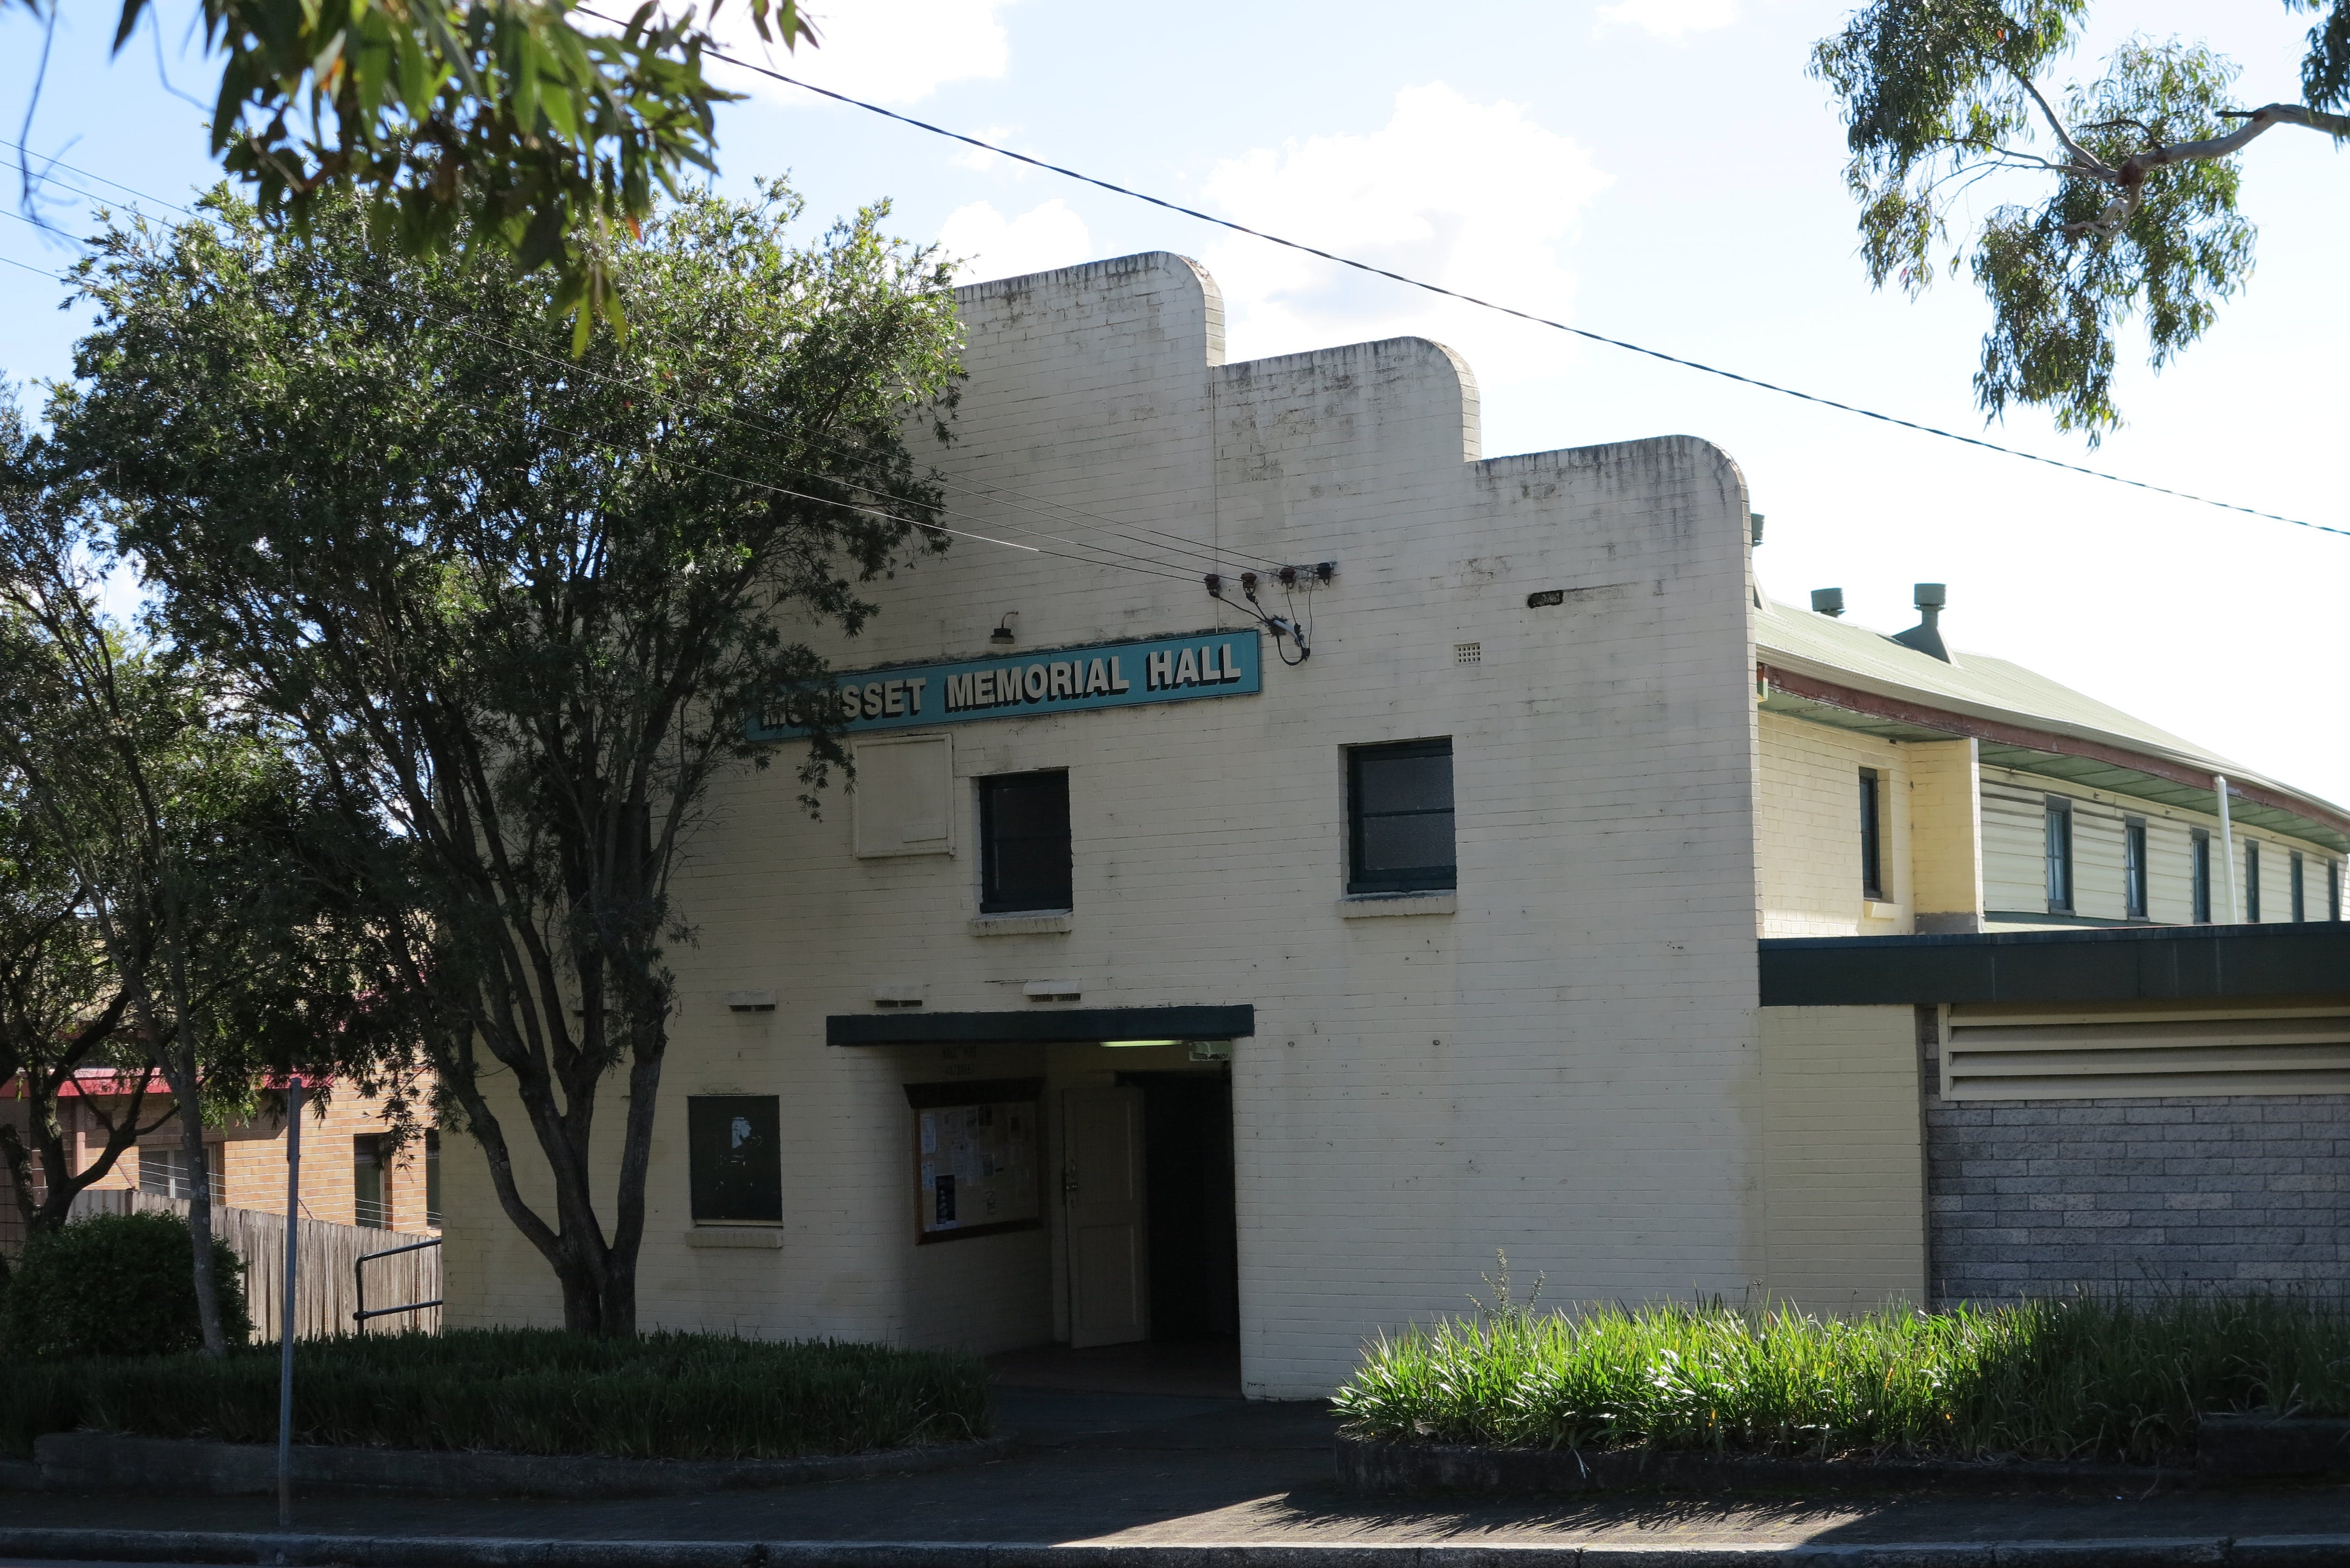 Morisset Memorial Hall